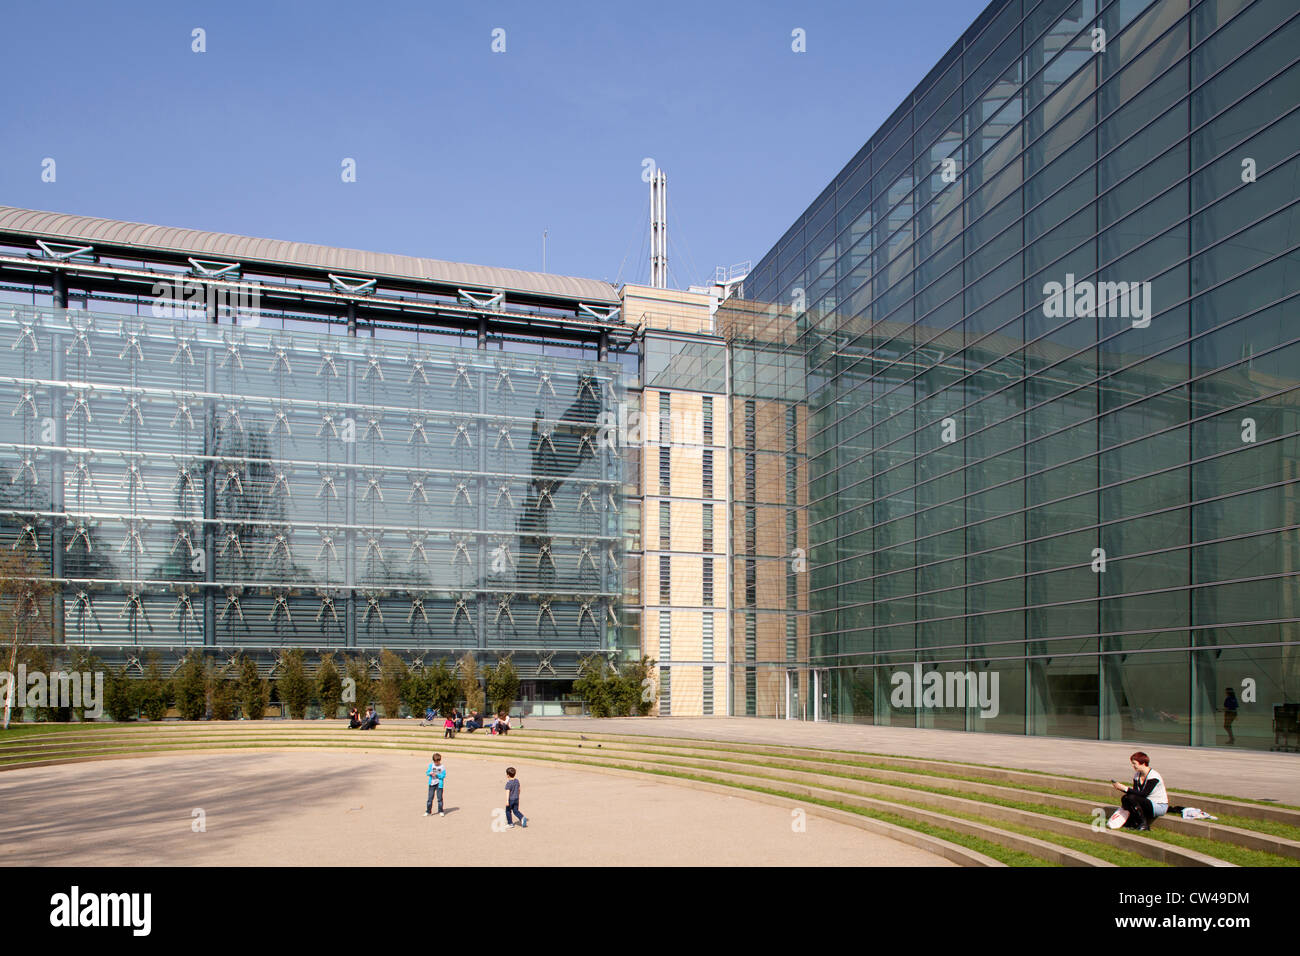 Darwin Centre and Natural History Museum, London - Stock Image